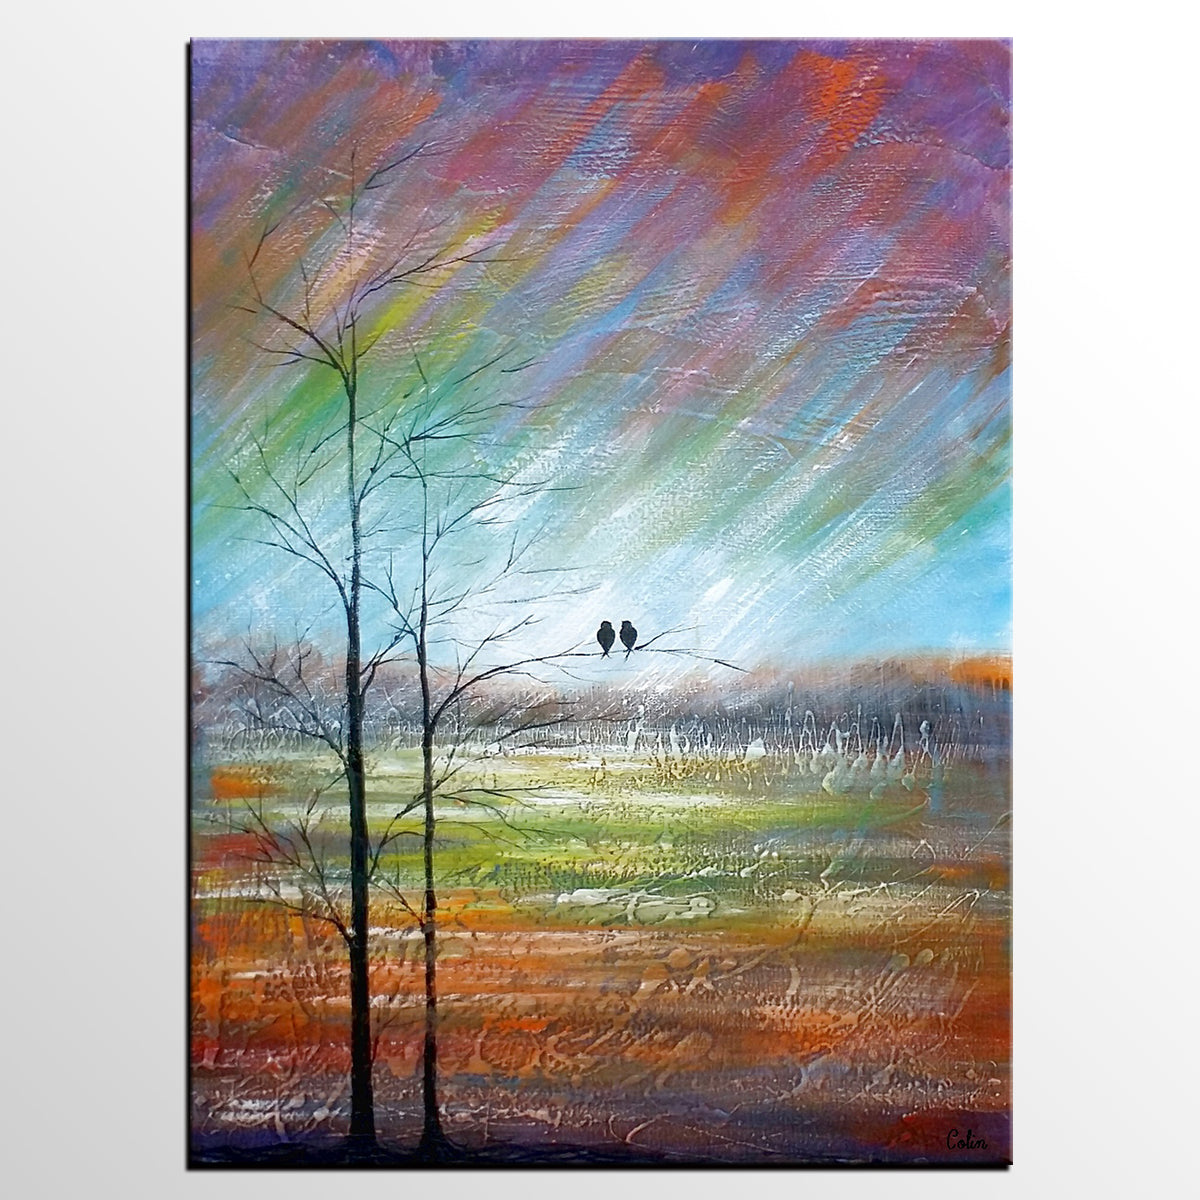 Large Art, Canvas Painting, Abstract Art for Sale, Love Birds Art-artworkcanvas